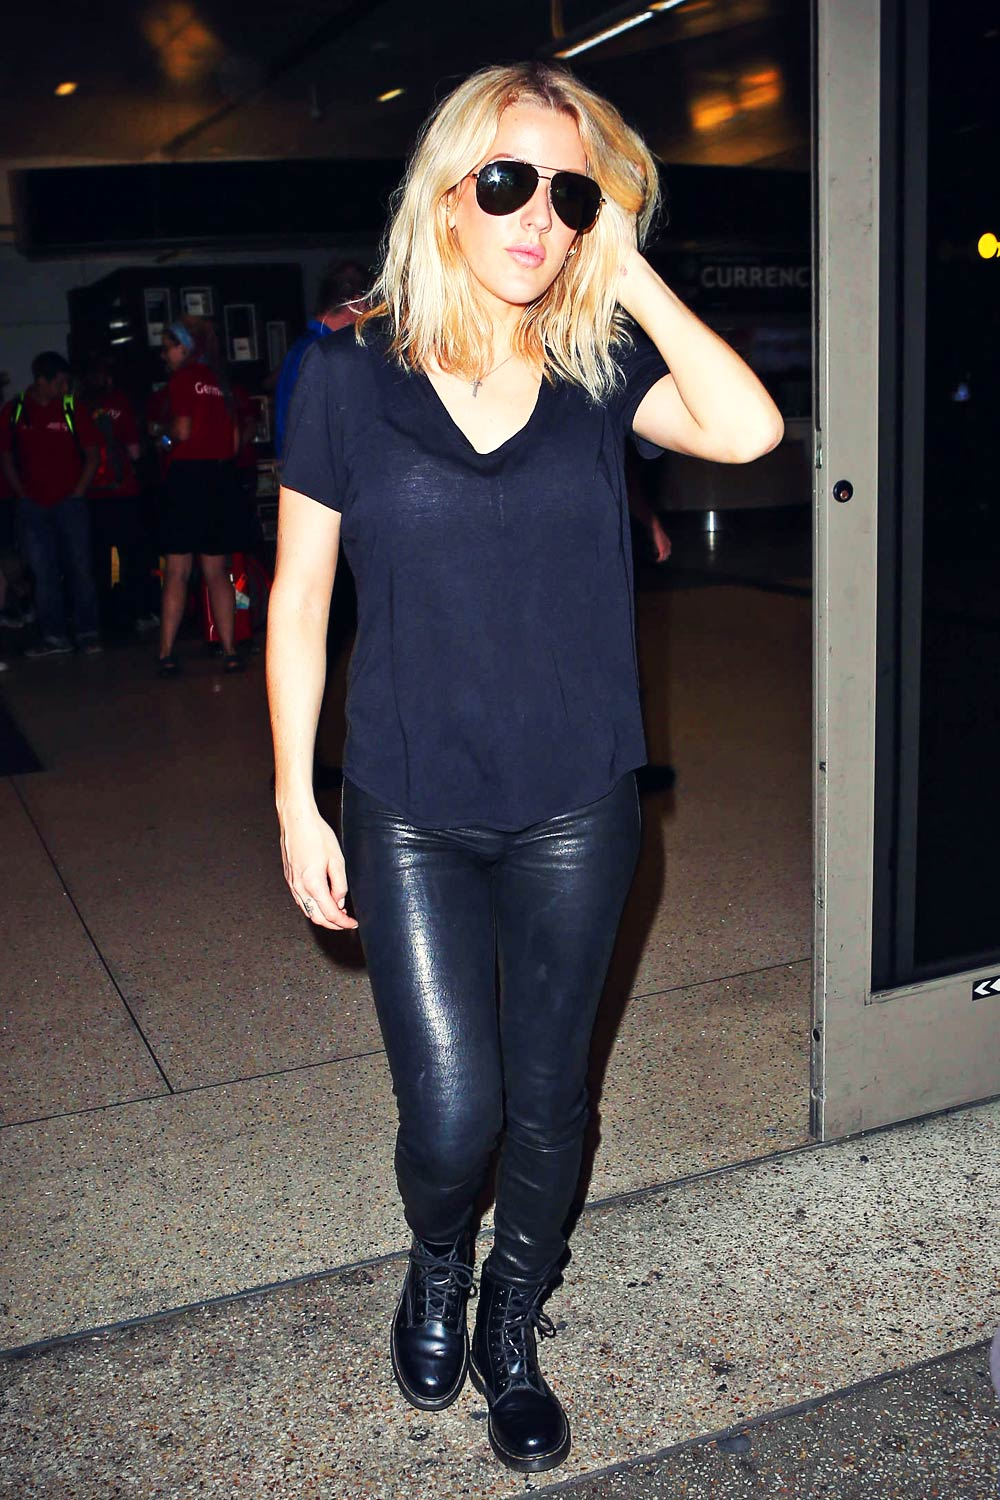 Ellie Goulding at LAX airport in LA